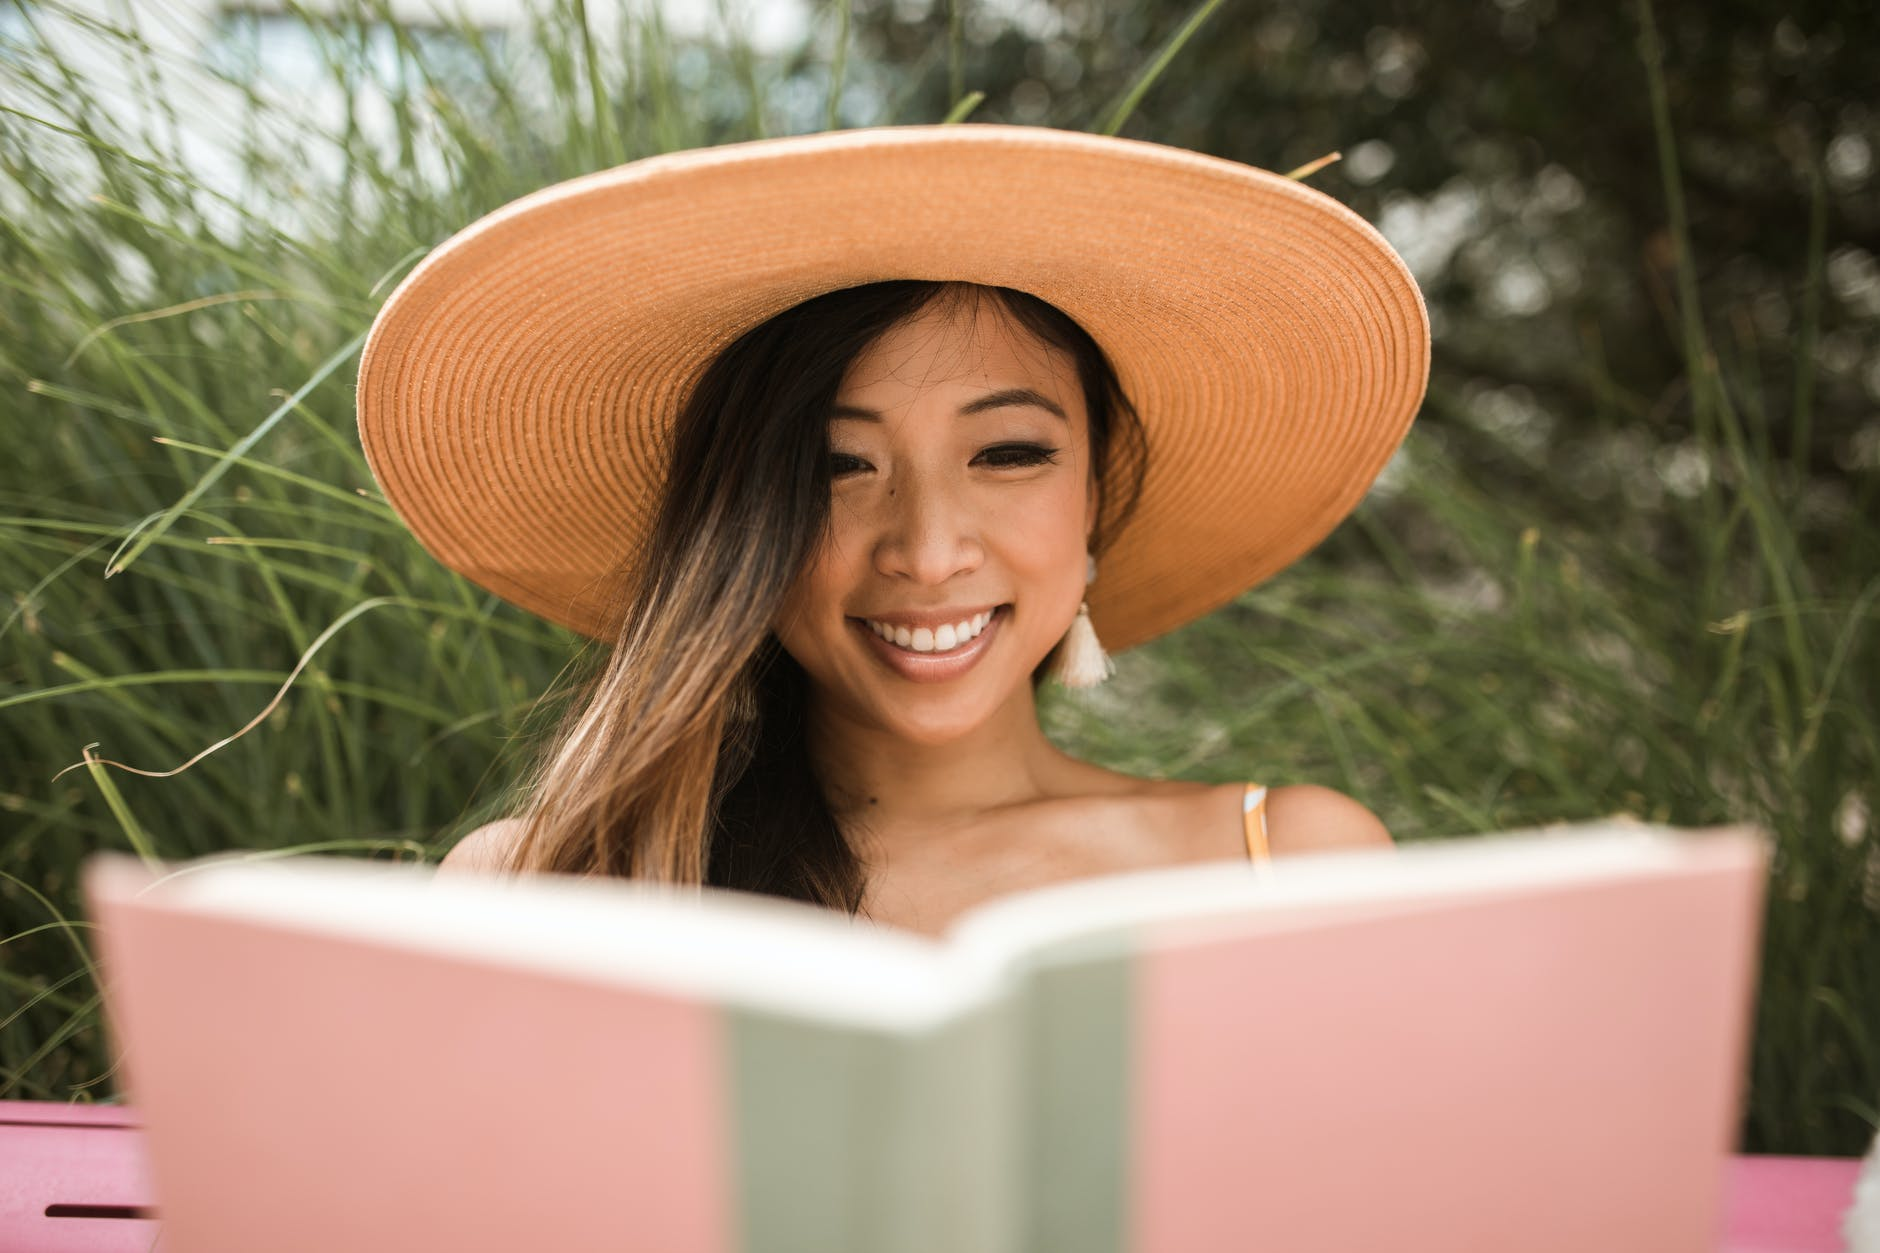 smiling woman wearing a sun hat and reading a book